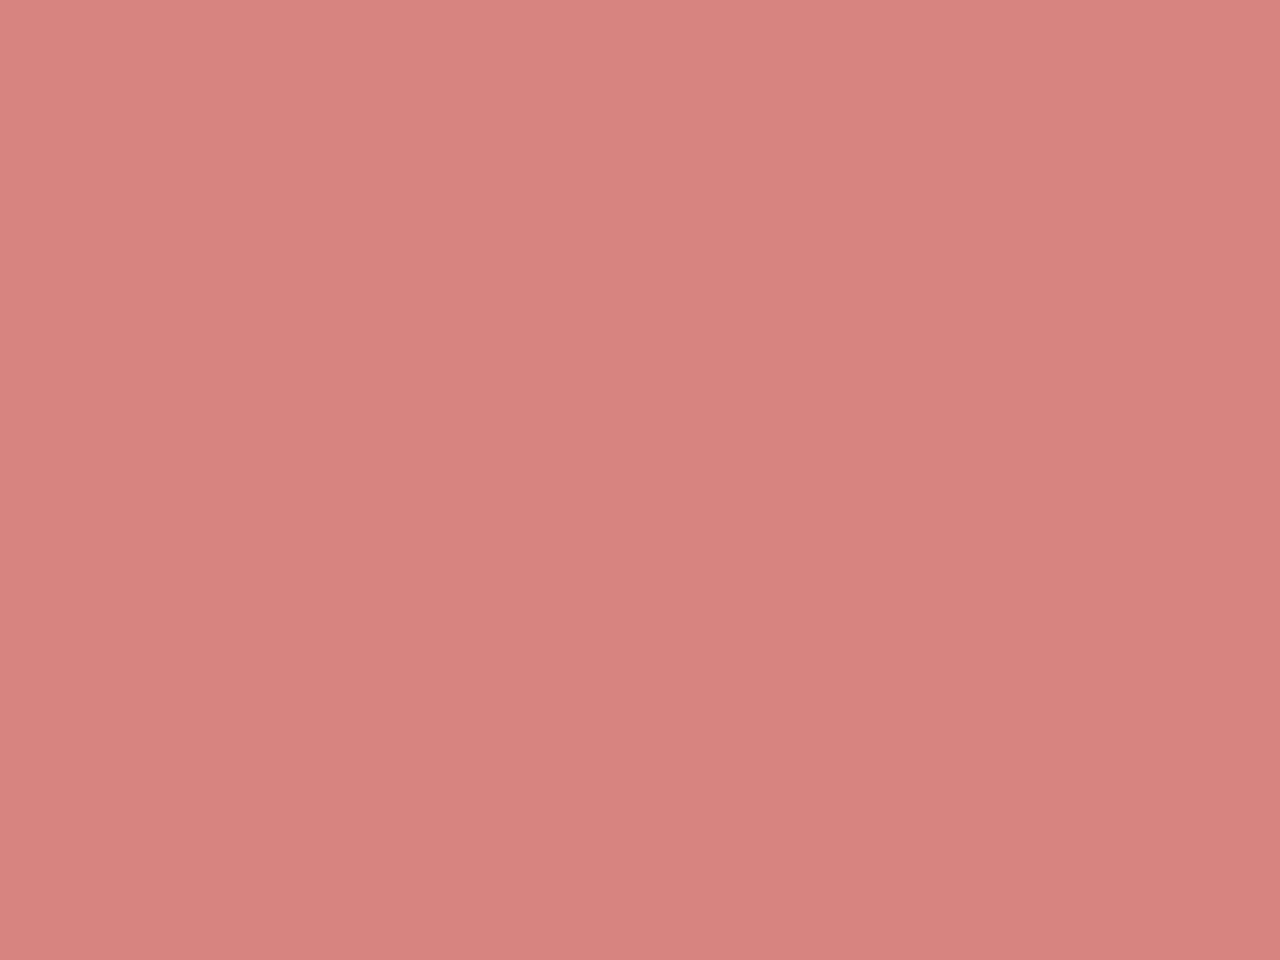 1280x960 New York Pink Solid Color Background